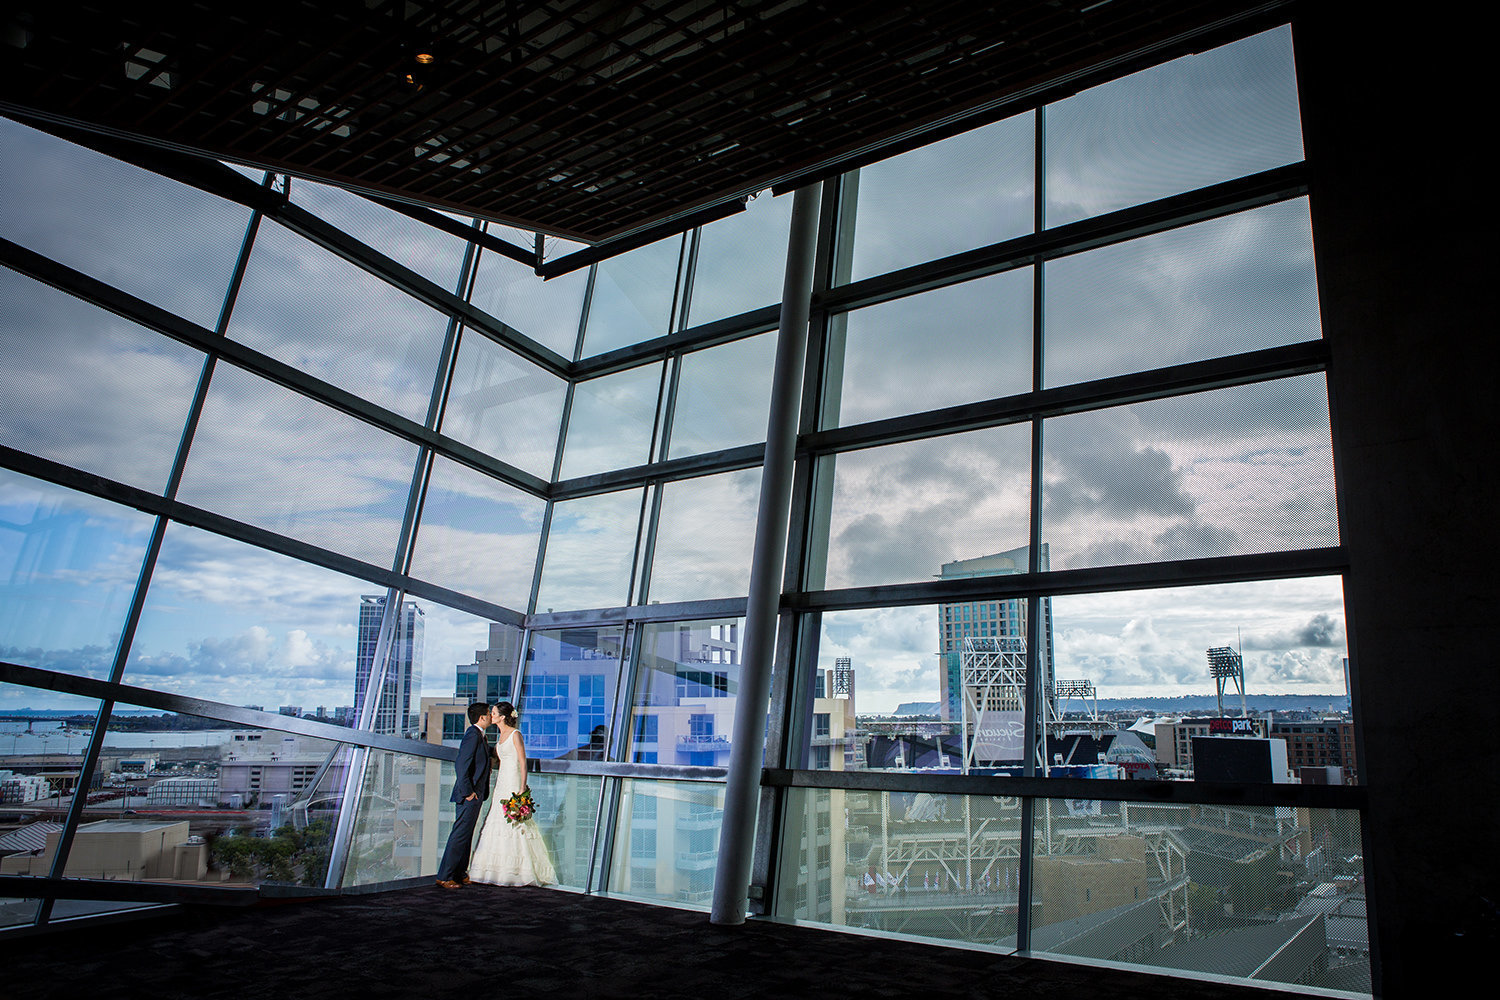 bride and groom public library luce loft wedding